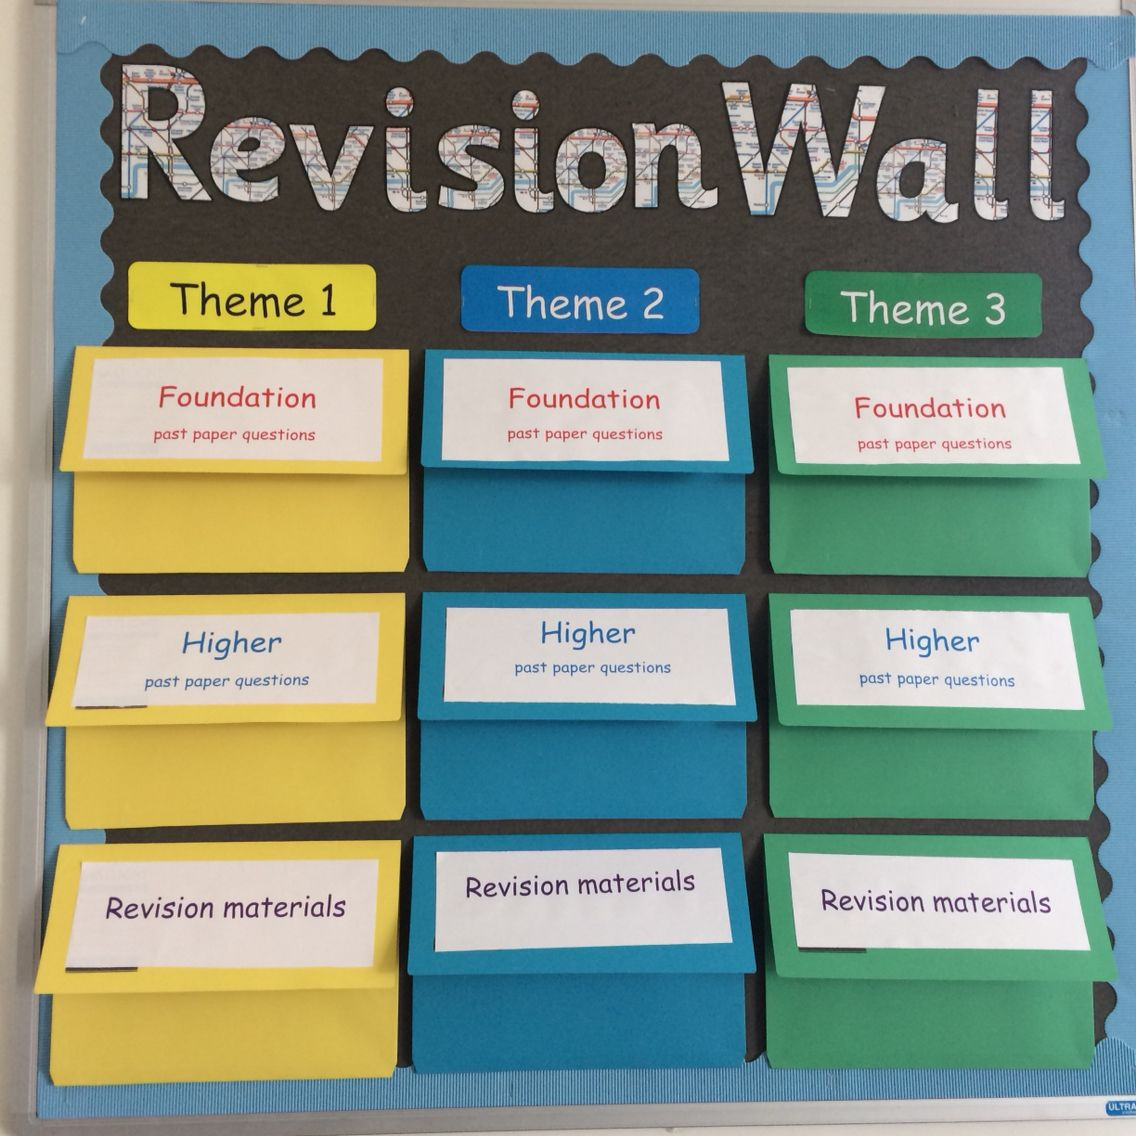 Classroom Display Ideas Ks4 : Revision wall for wjec b geography gcse in my classroom